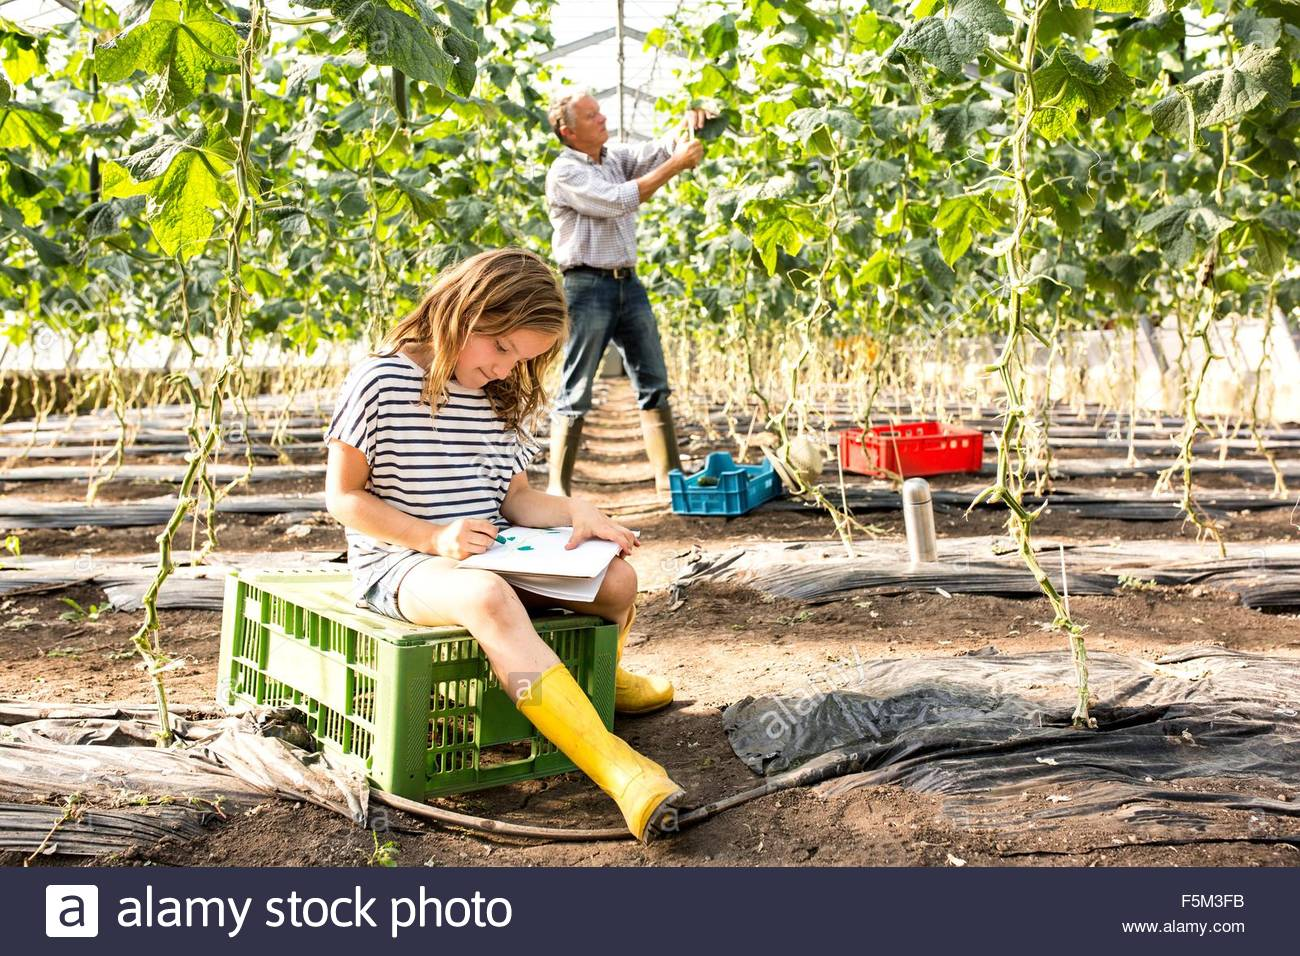 Girl sitting on crate in hothouse drawing while grandfather works behind - Stock Image